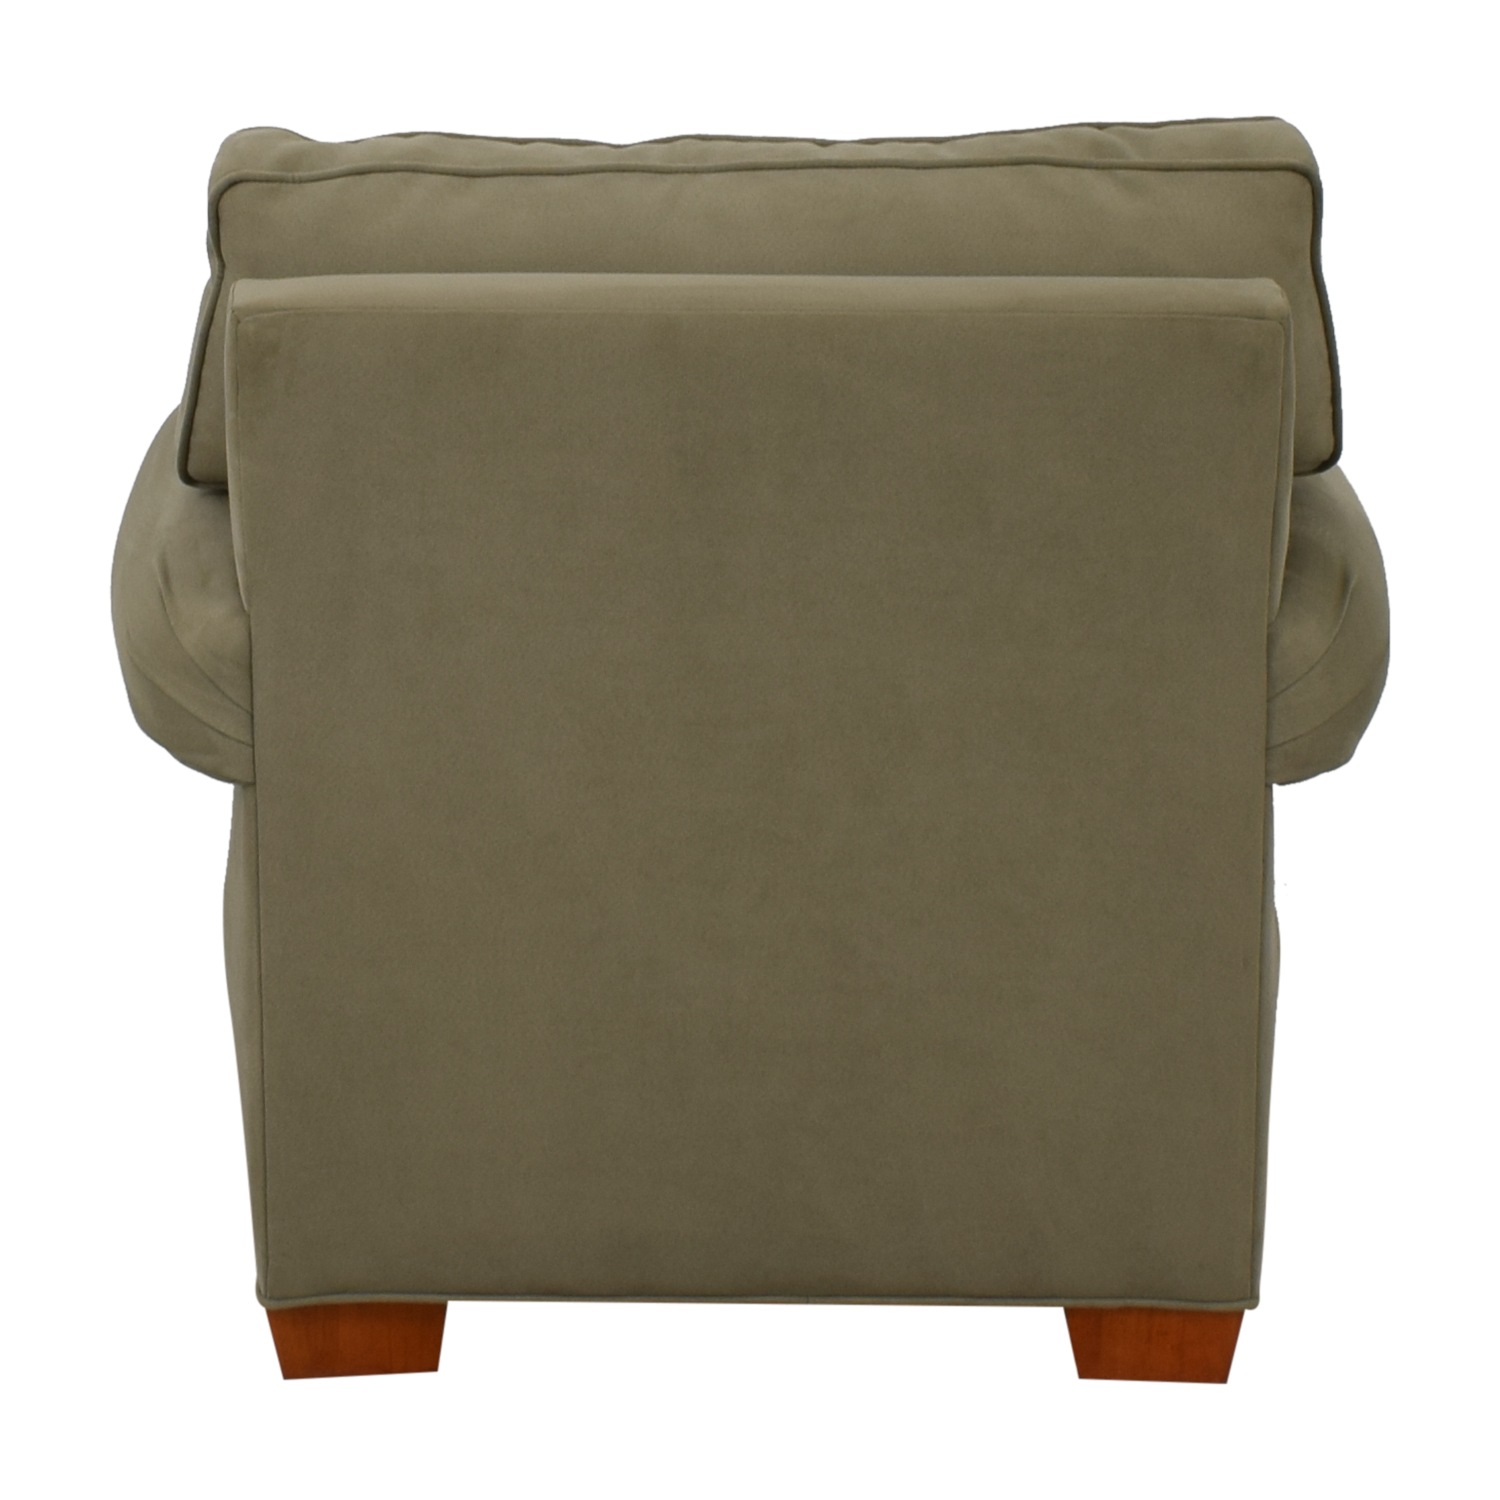 Raymour & Flanigan Raymour & Flanigan Olive Green Accent Chair on sale